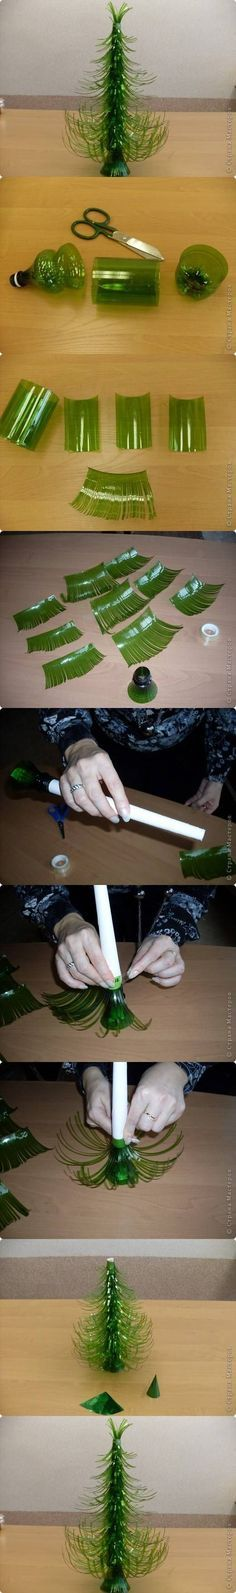 DIY Plastic Bottle Christmas Trees -- Cheap & Creative idea for dorm room…